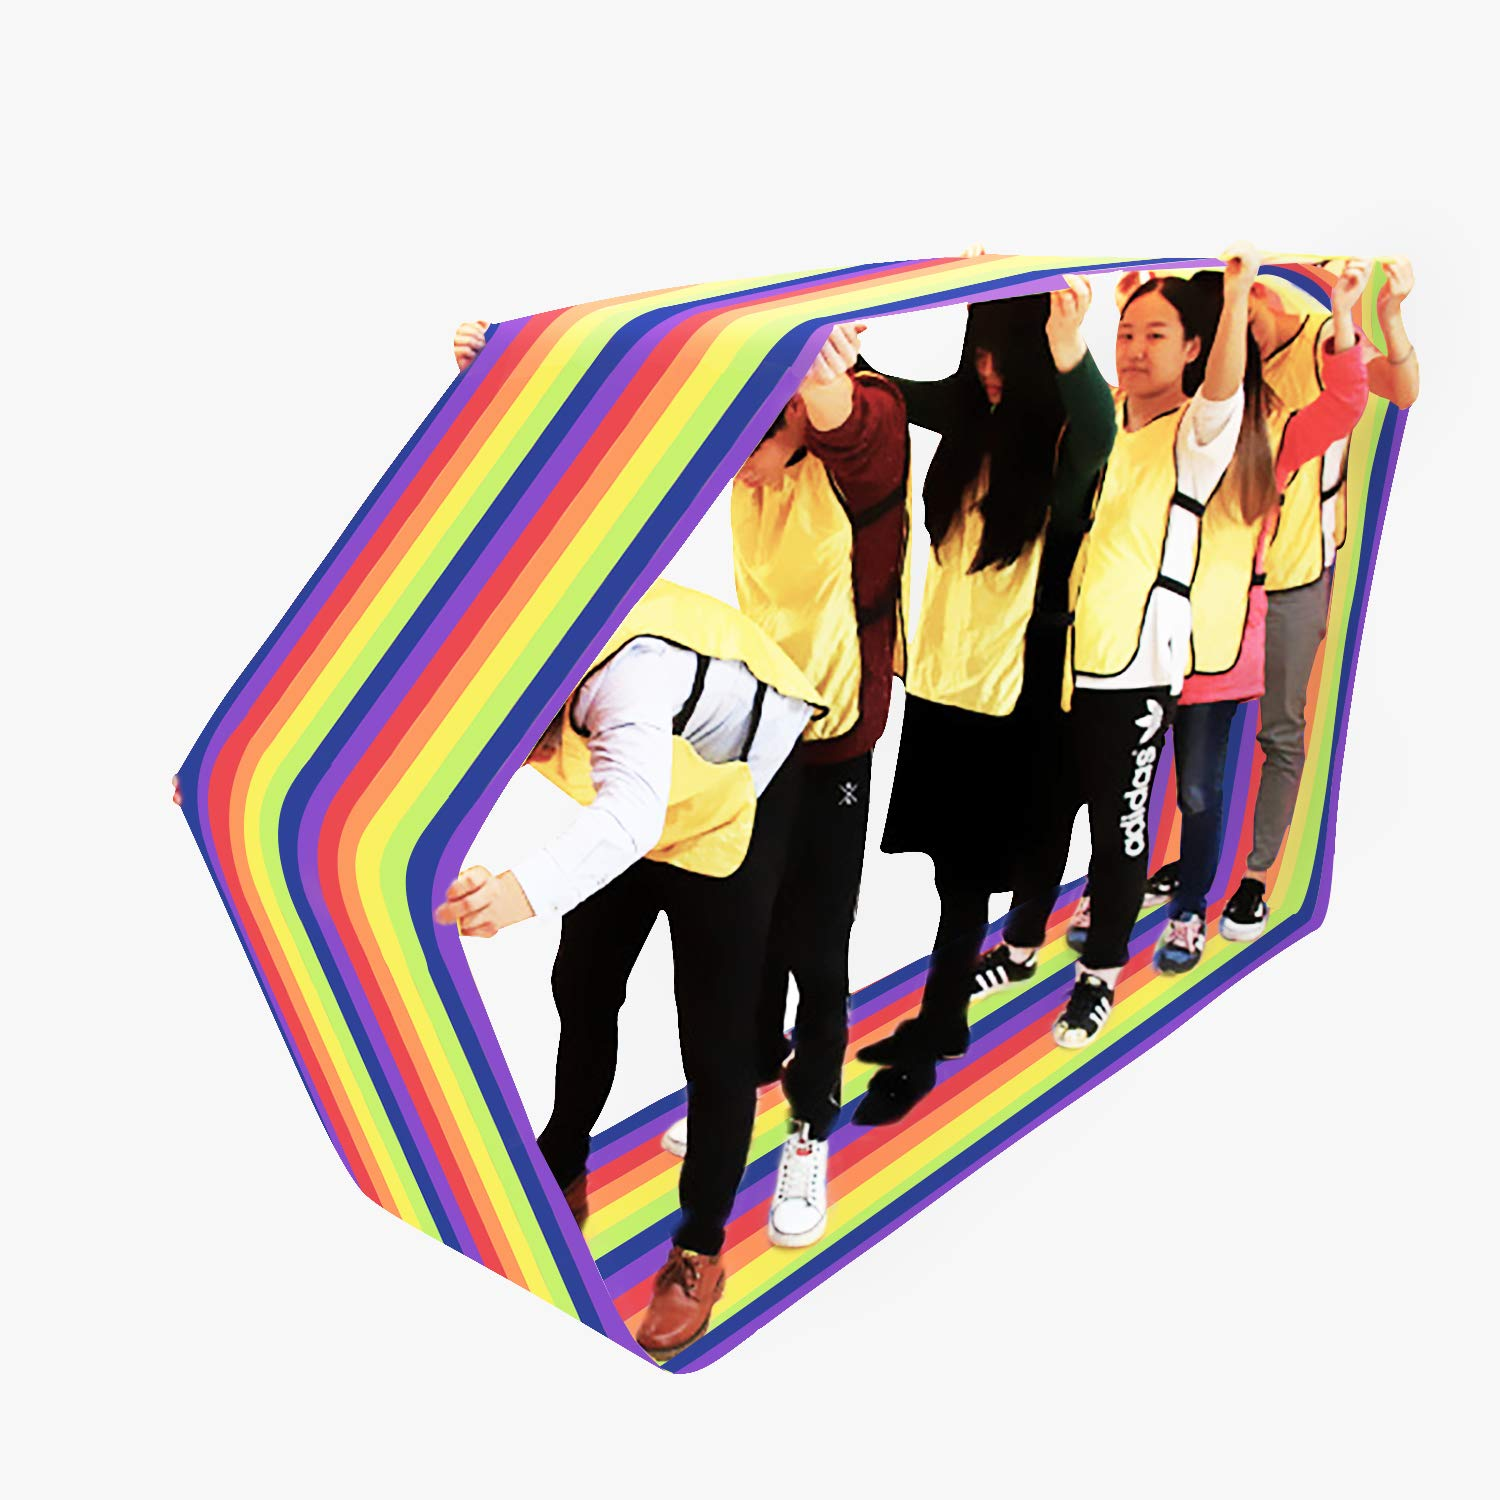 KINDEN Teamwork Games Group Learning Activity Fun Playing Run Mat by KINDEN (Image #1)